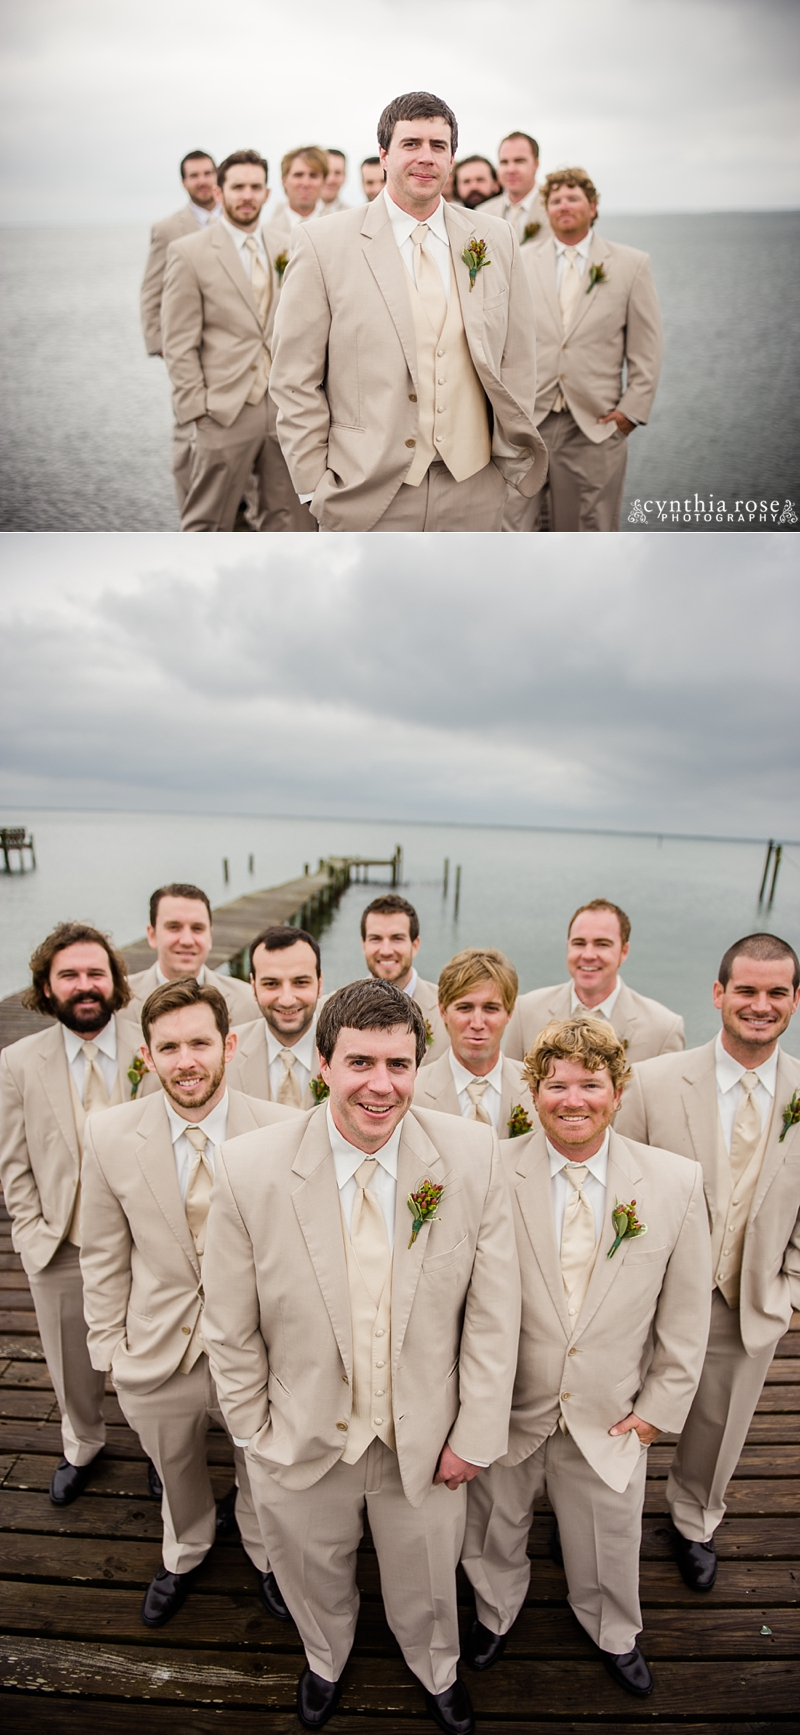 harkers-island-nc-wedding-photographer_1008.jpg